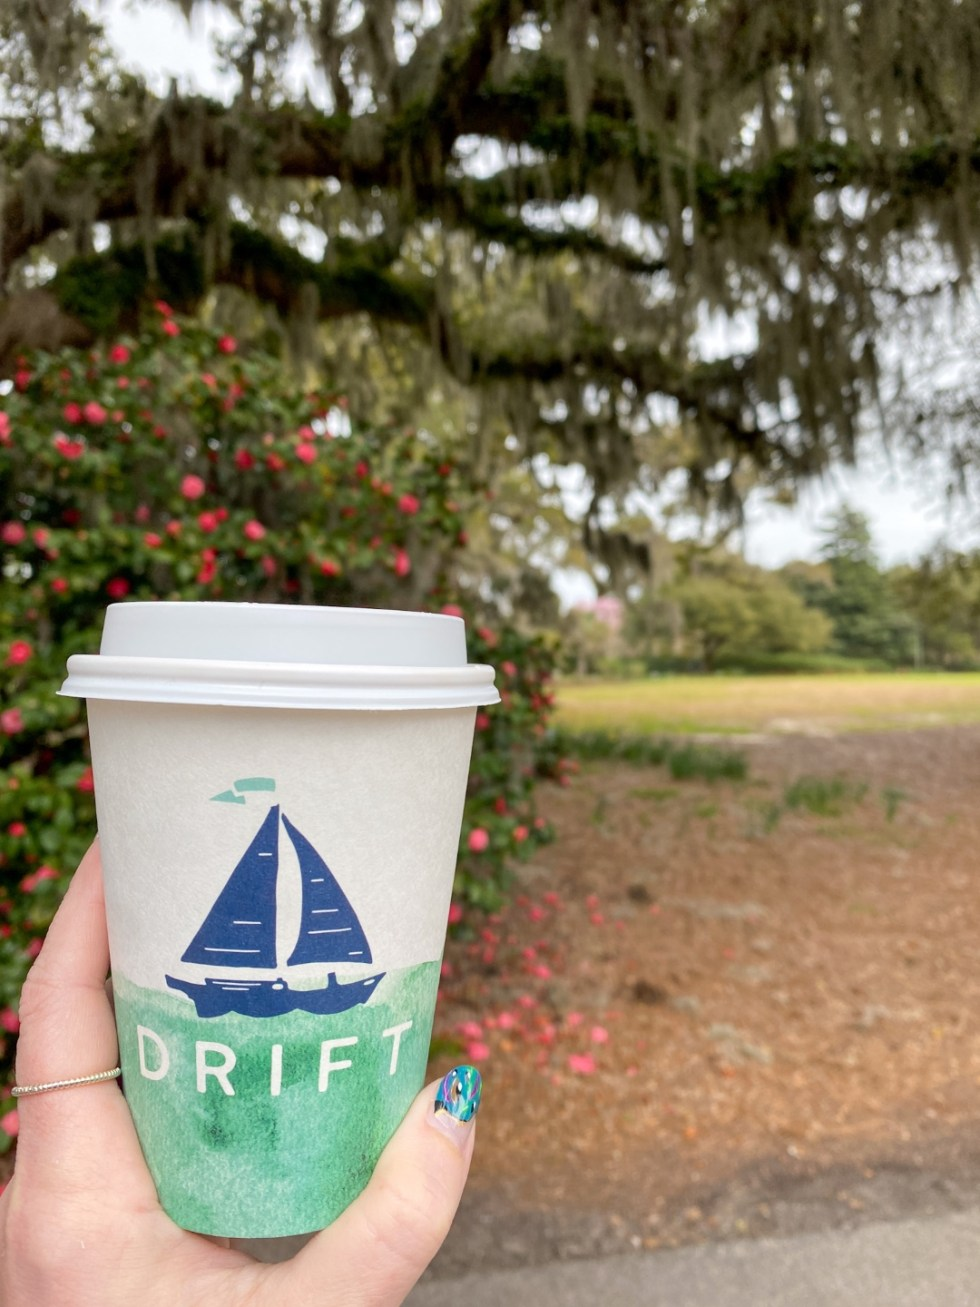 A Spring Weekend in Wilmington, NC: the Best Things to Do - I'm Fixin' To - @imfixintoblog |Weekend in Wilmington by popular NC travel blog, I'm Fixin' To: image of a woman holding a Drift coffee cup.